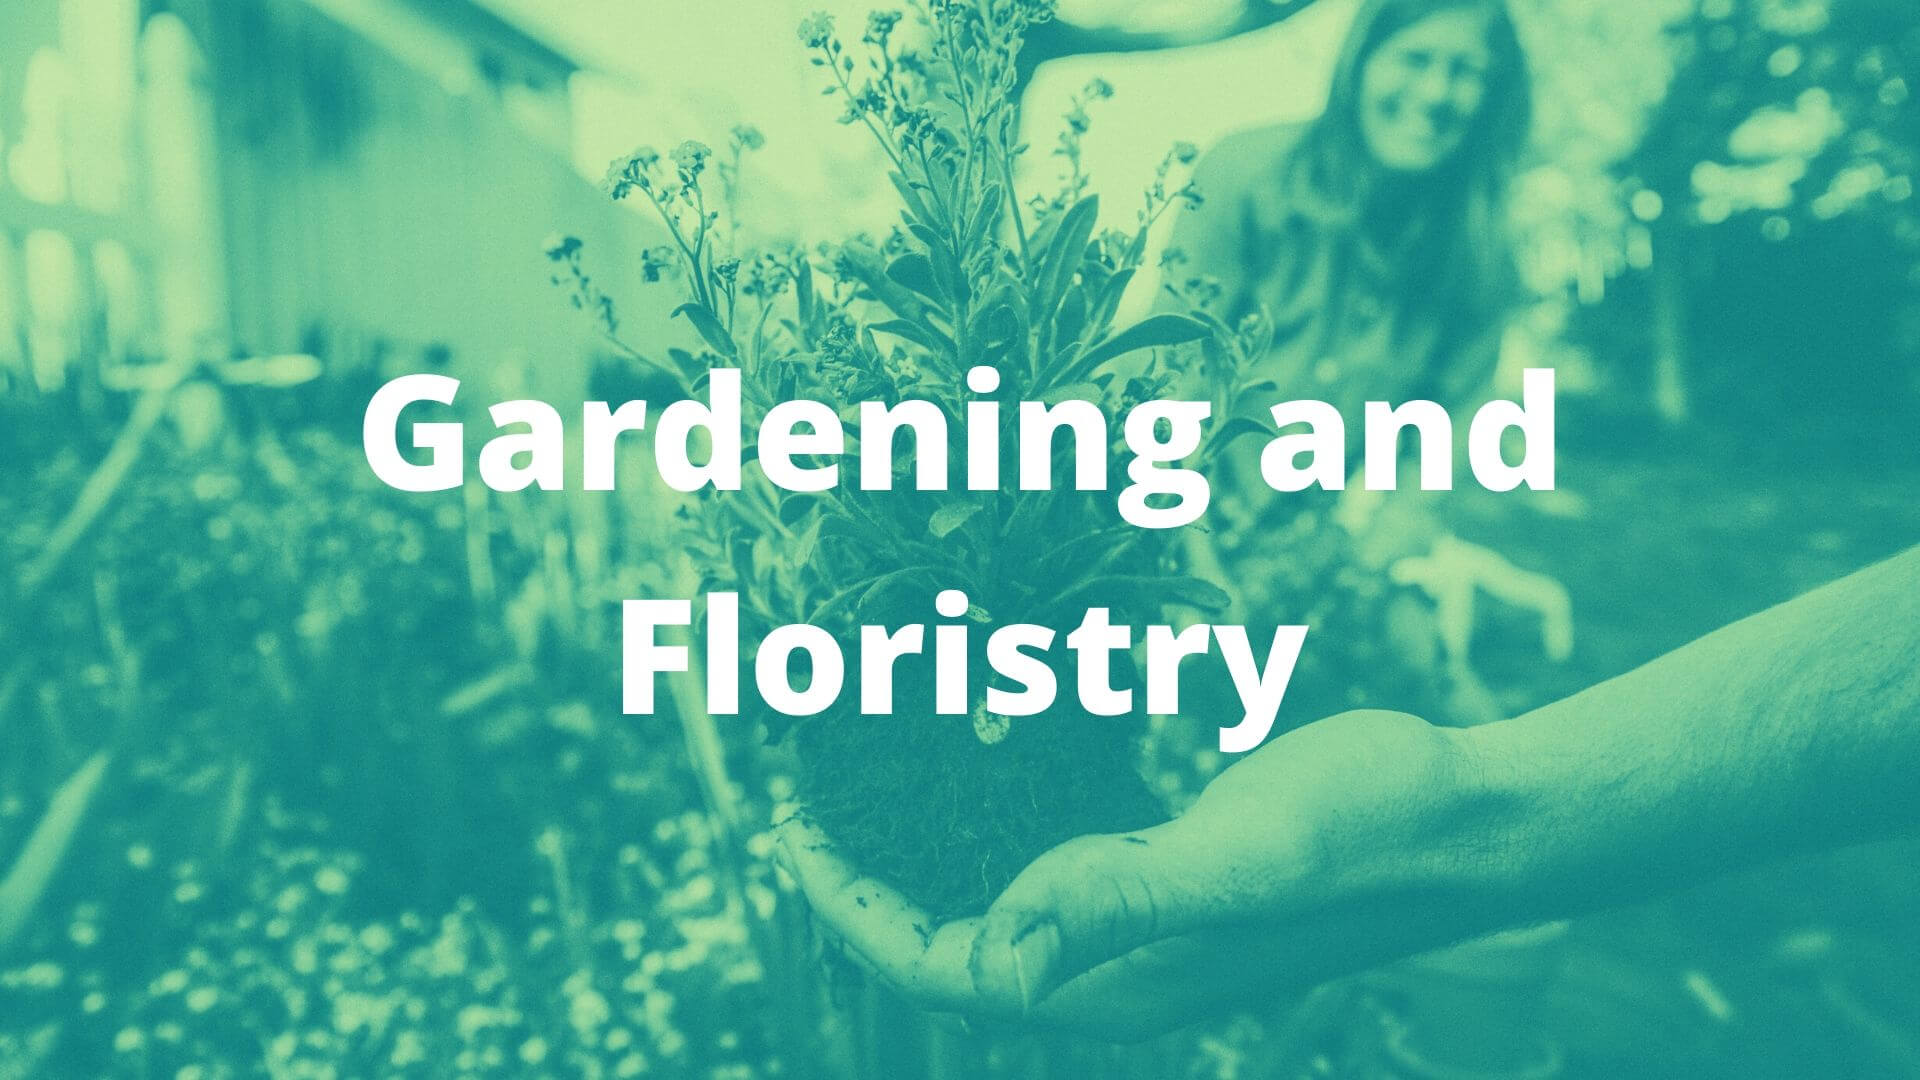 Gardening and Floristry